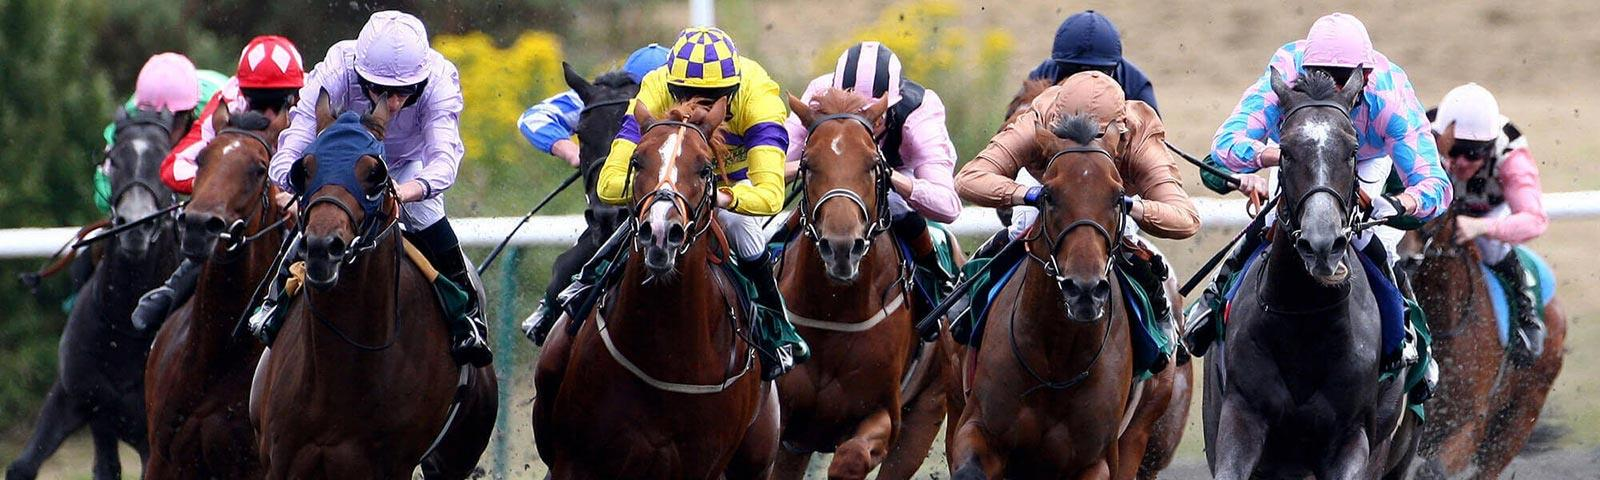 Group of jockeys racing at Lingfield Park Resort.